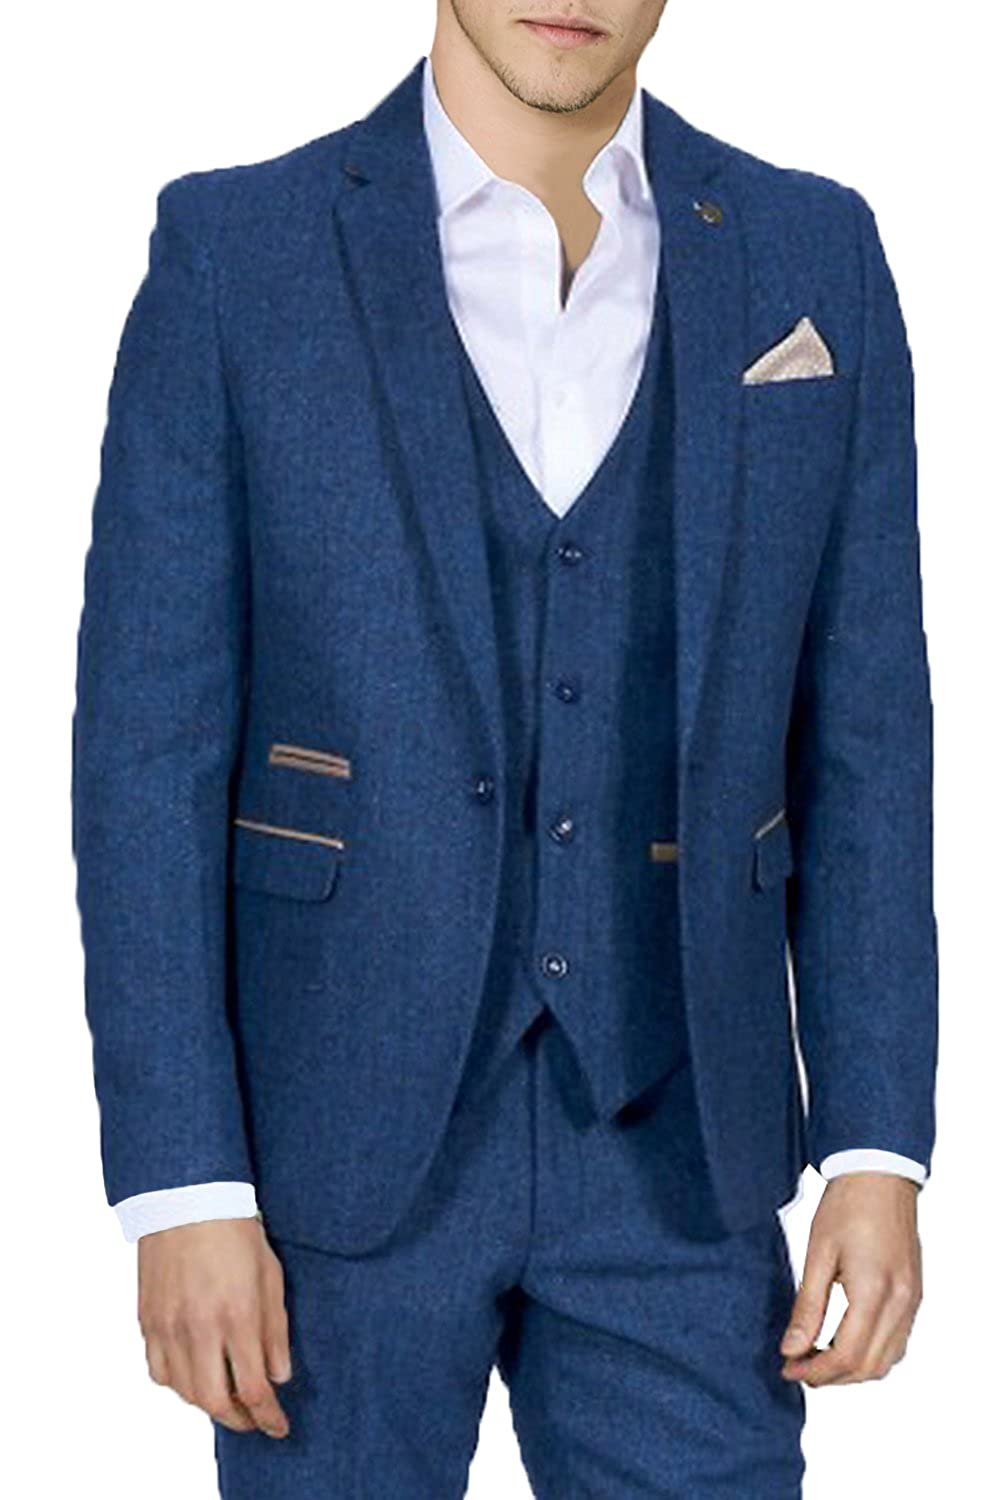 Mens Marc Darcy Designer Blazer Blue Herringbone Tweed Jacket